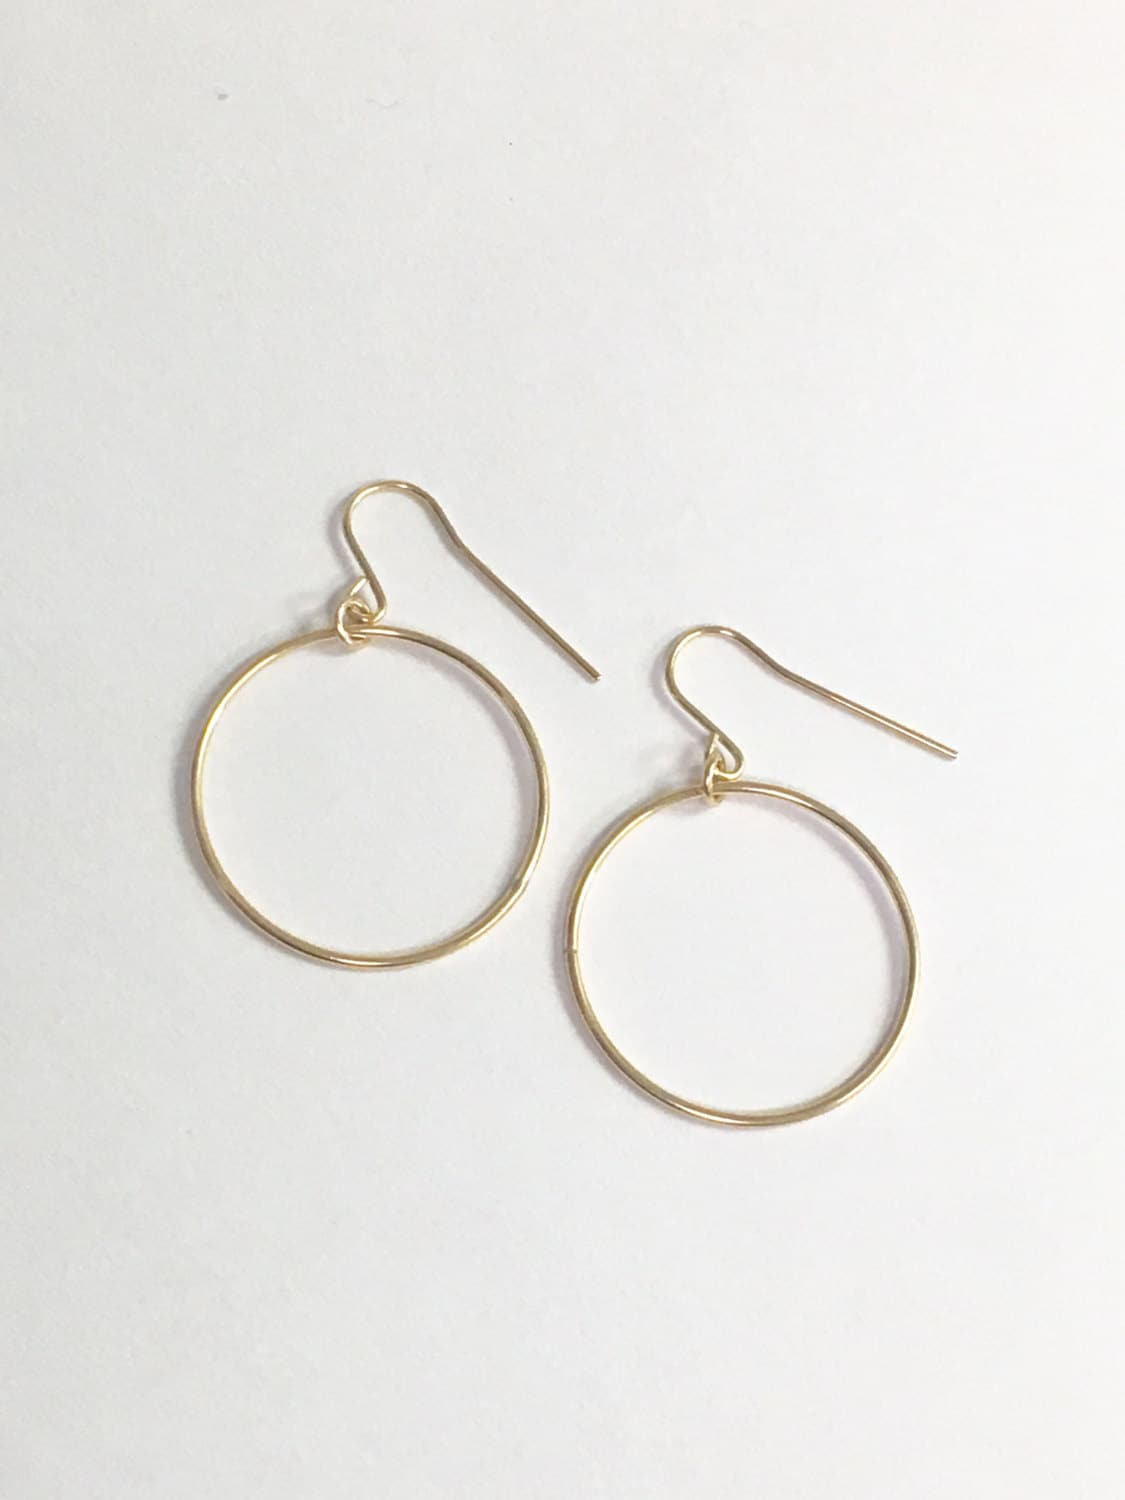 of with earrings price gold different simple caymancode designs design